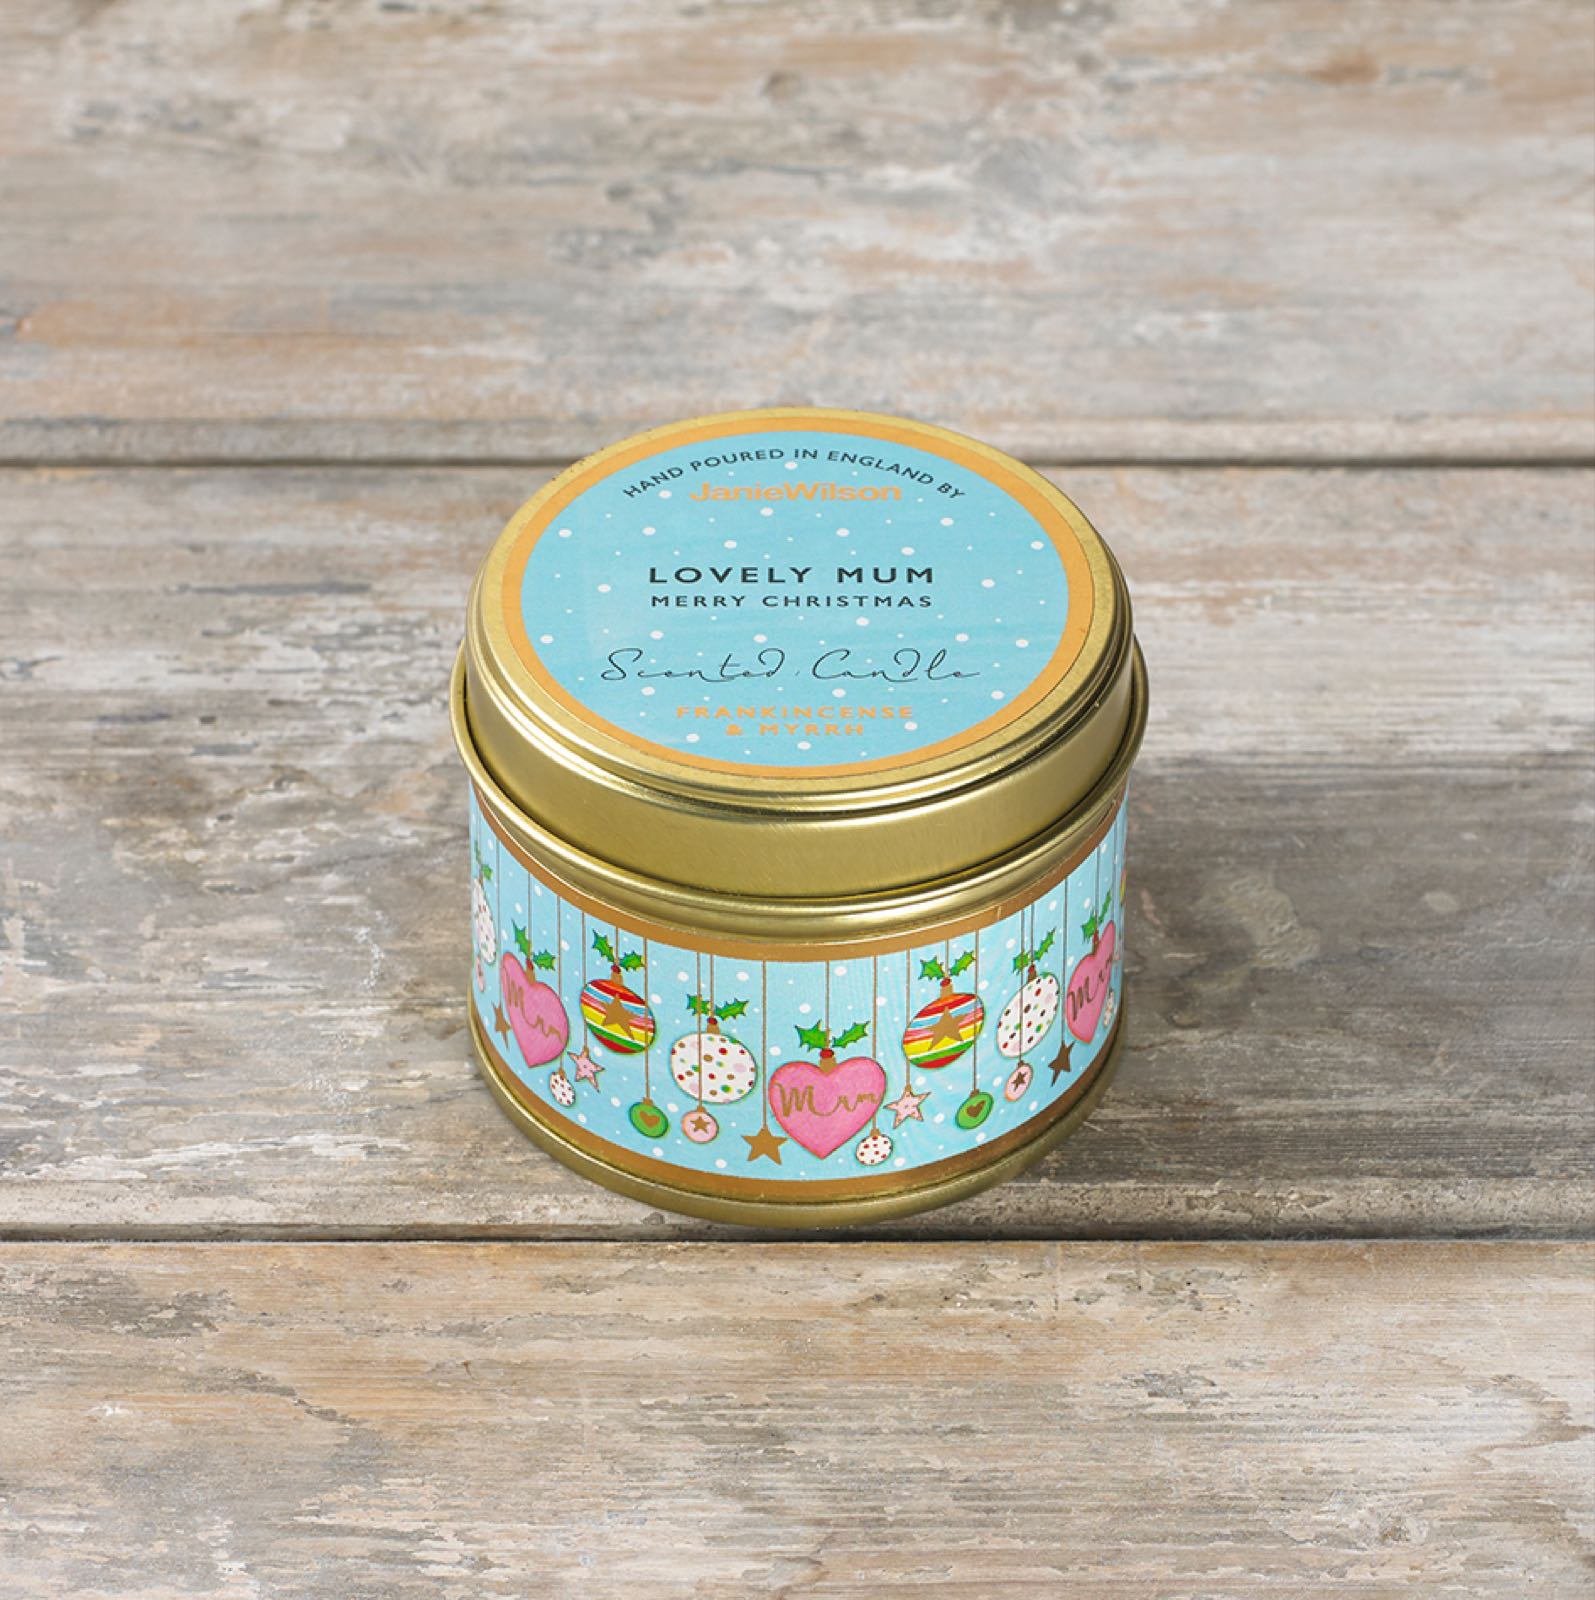 Janie wilson Lovely mum fragranced frankincense and myrrh tinned small candle (matching card available)